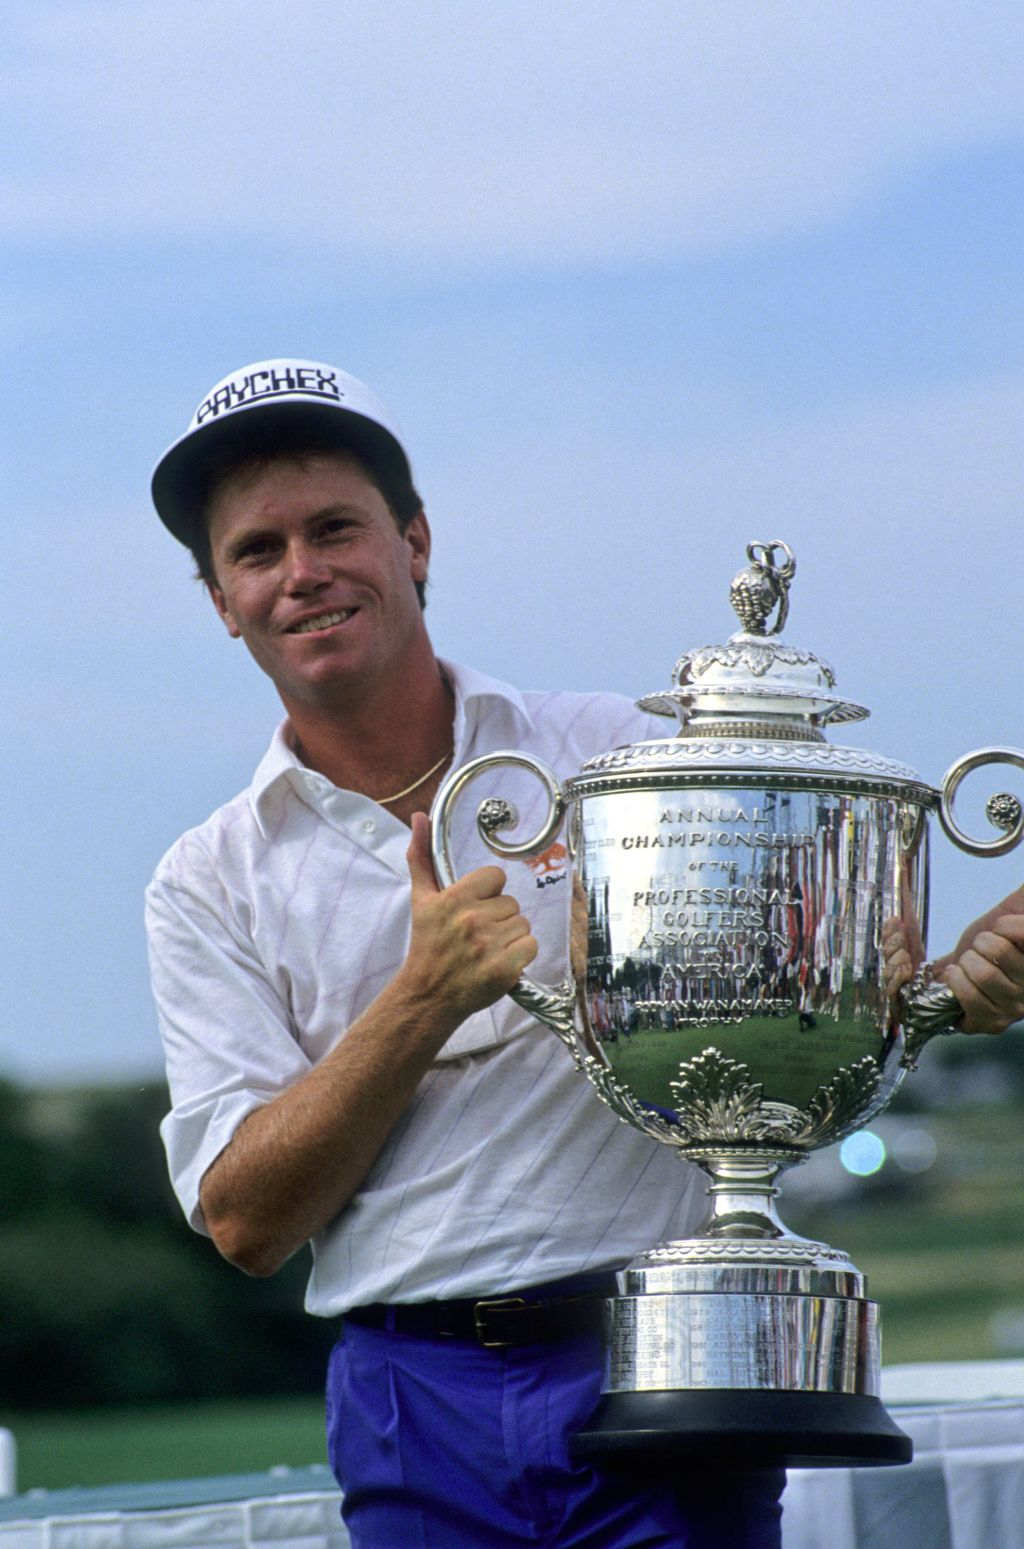 Jeff Sluman holding up the huge trophy after winning the 1988 USPGA